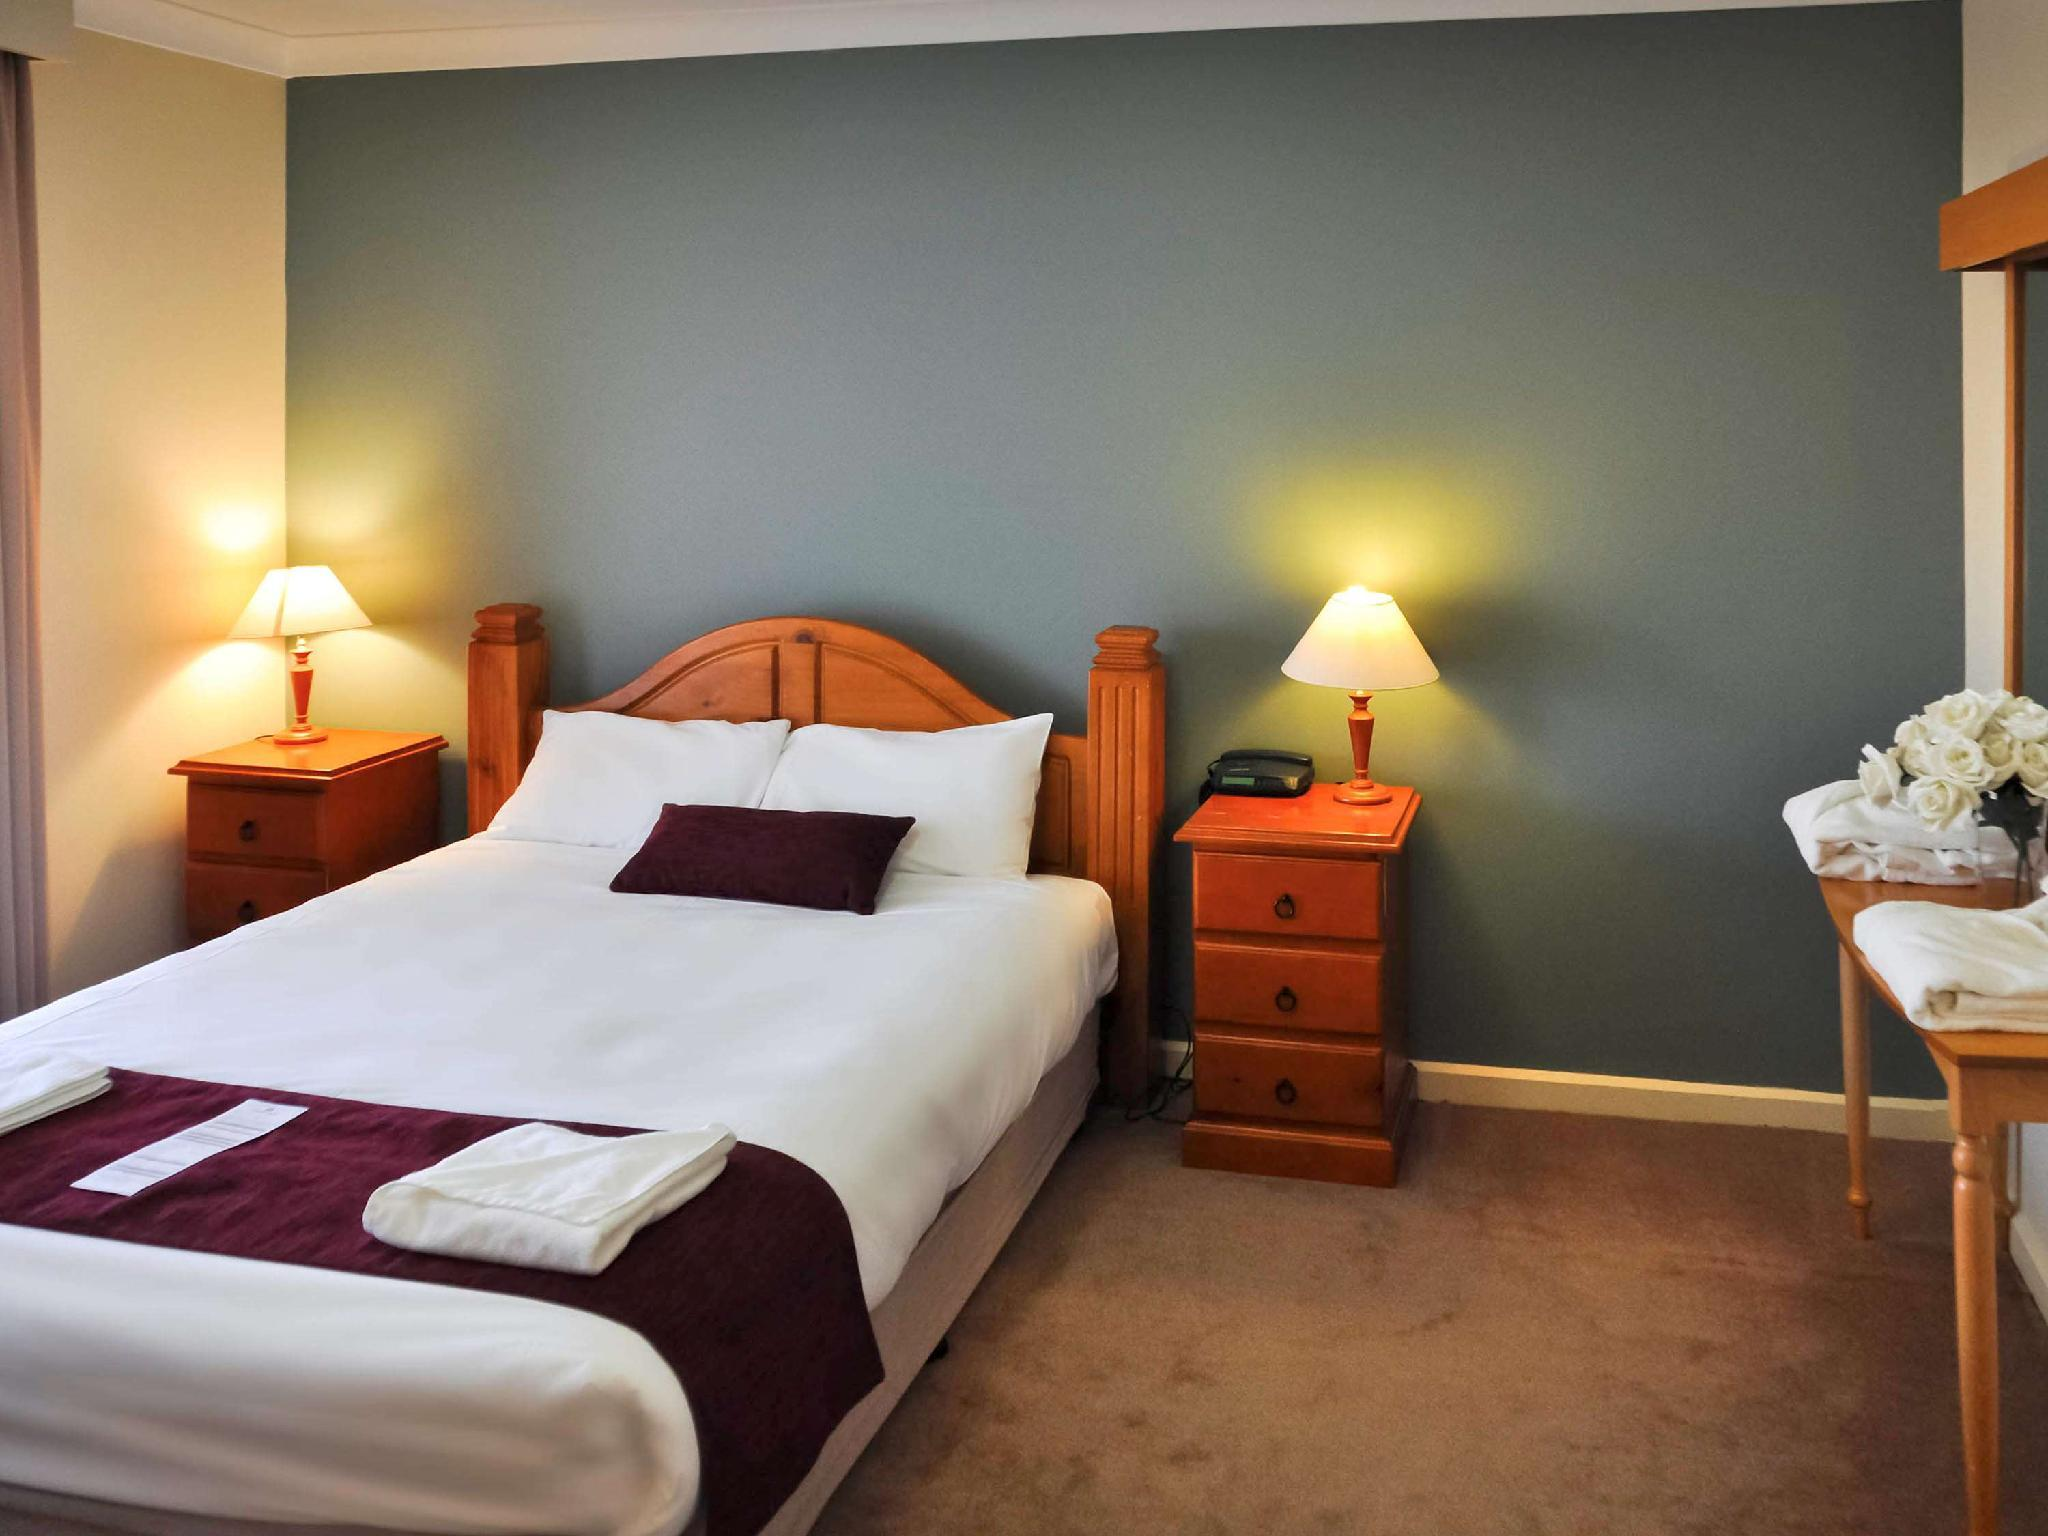 Superior Room with 1 queensize bed and 2 single beds